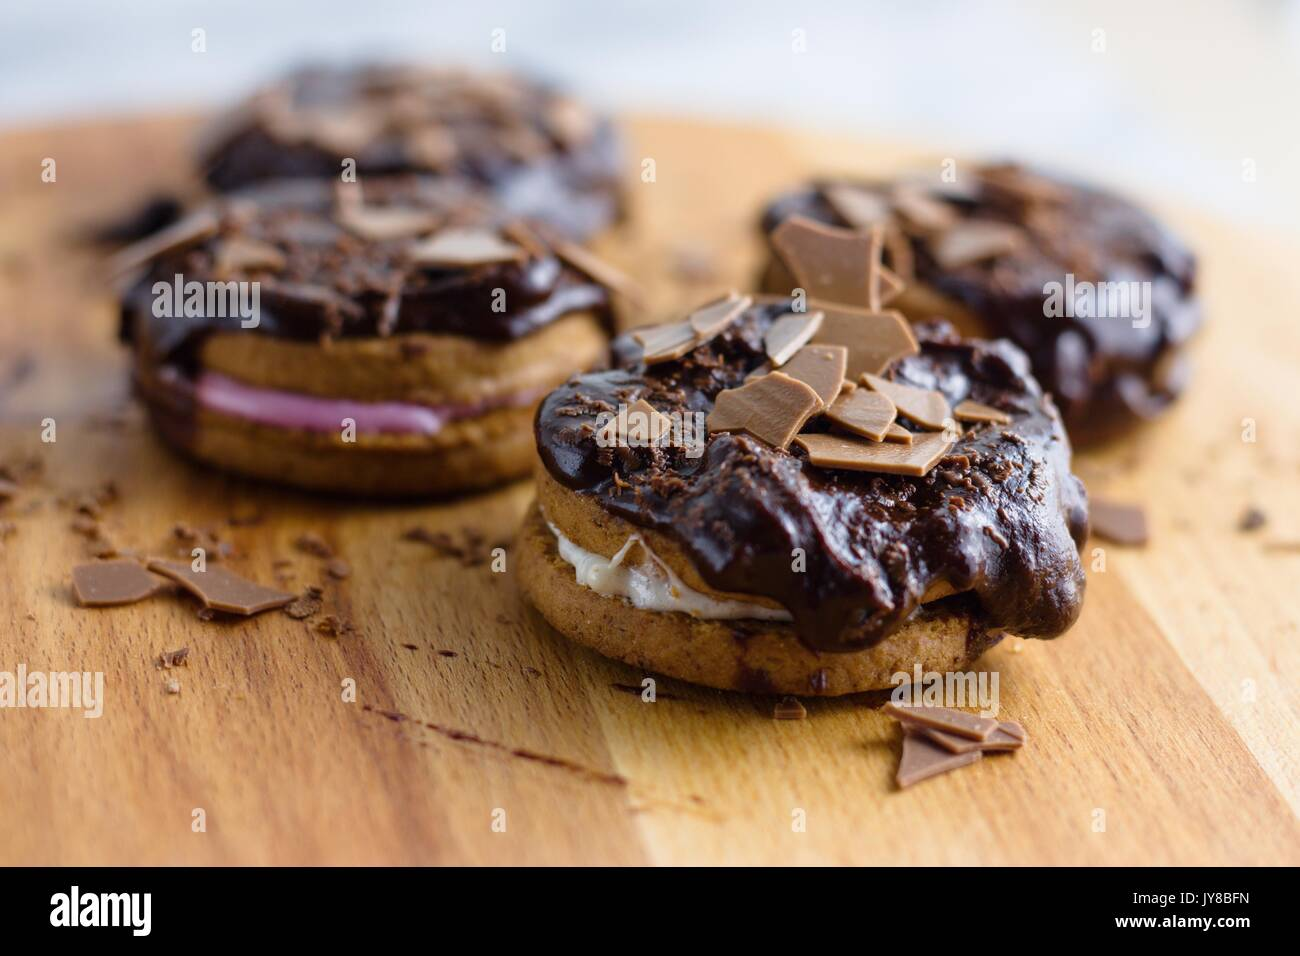 La cannelle et le sandwich guimauve chocolat surmontée de cookies Photo Stock